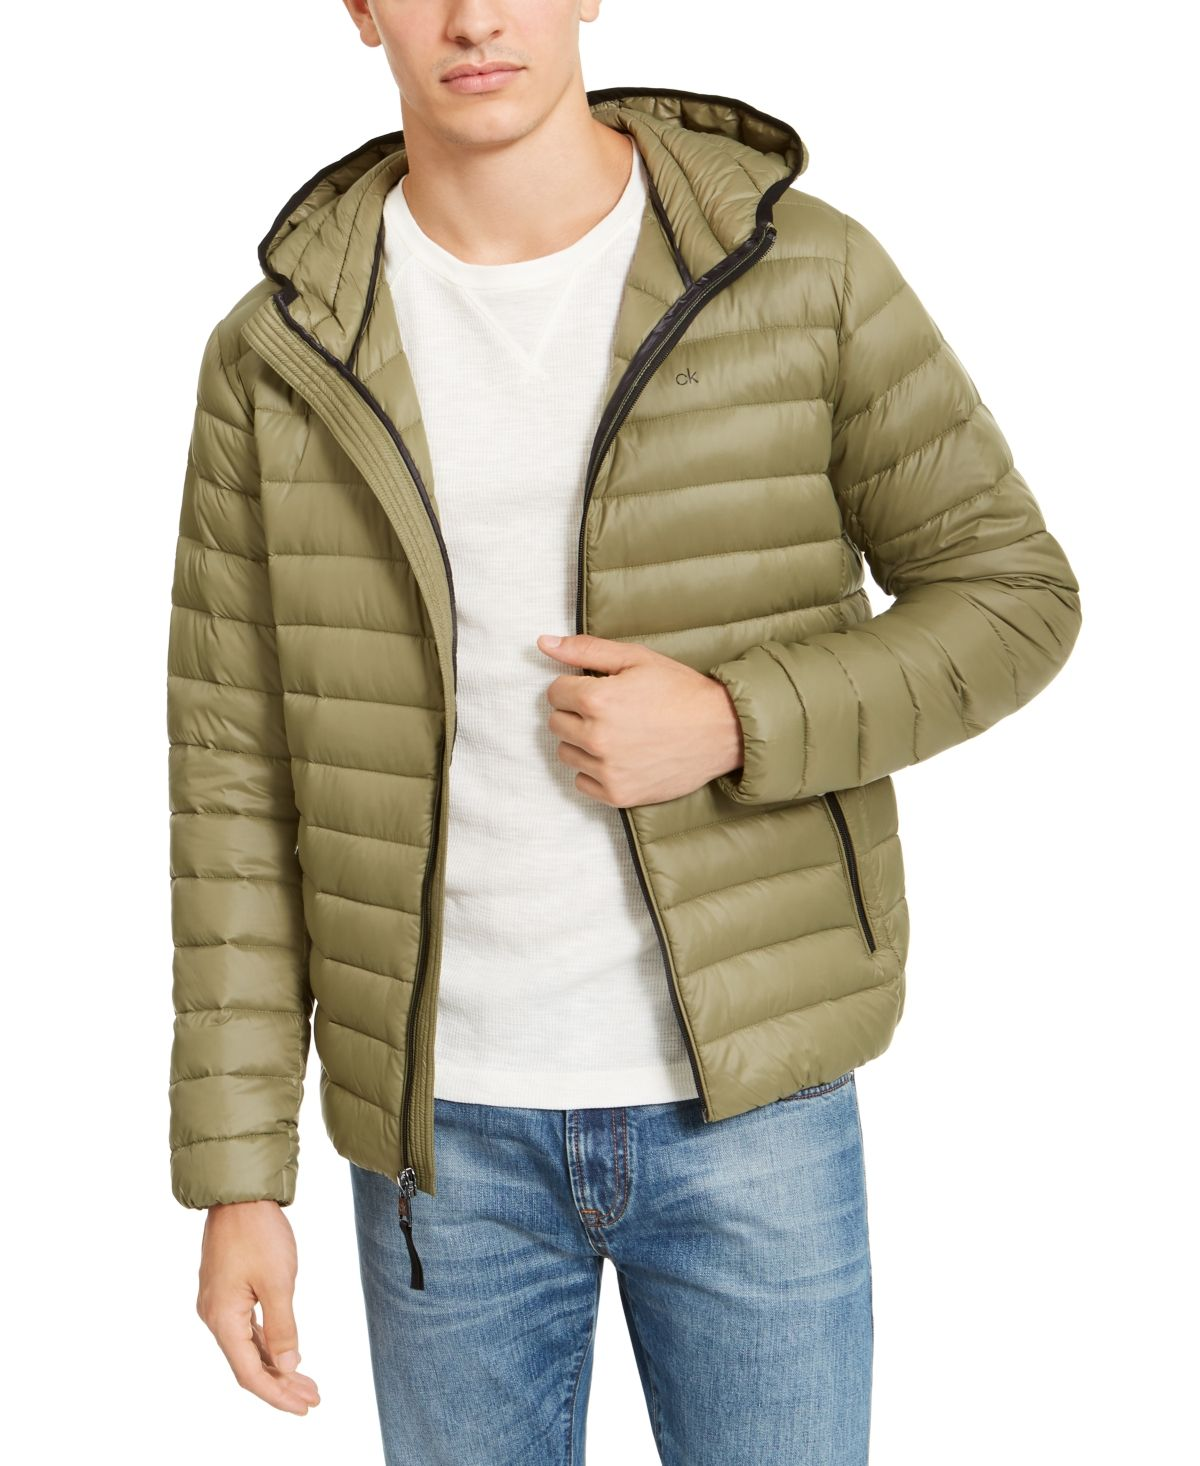 Calvin Klein Men S Packable Down Hooded Puffer Jacket Created For Macy S Reviews Coats Jackets Men Macy S In 2021 Calvin Klein Men Calvin Klein Mens Jackets [ 1466 x 1200 Pixel ]